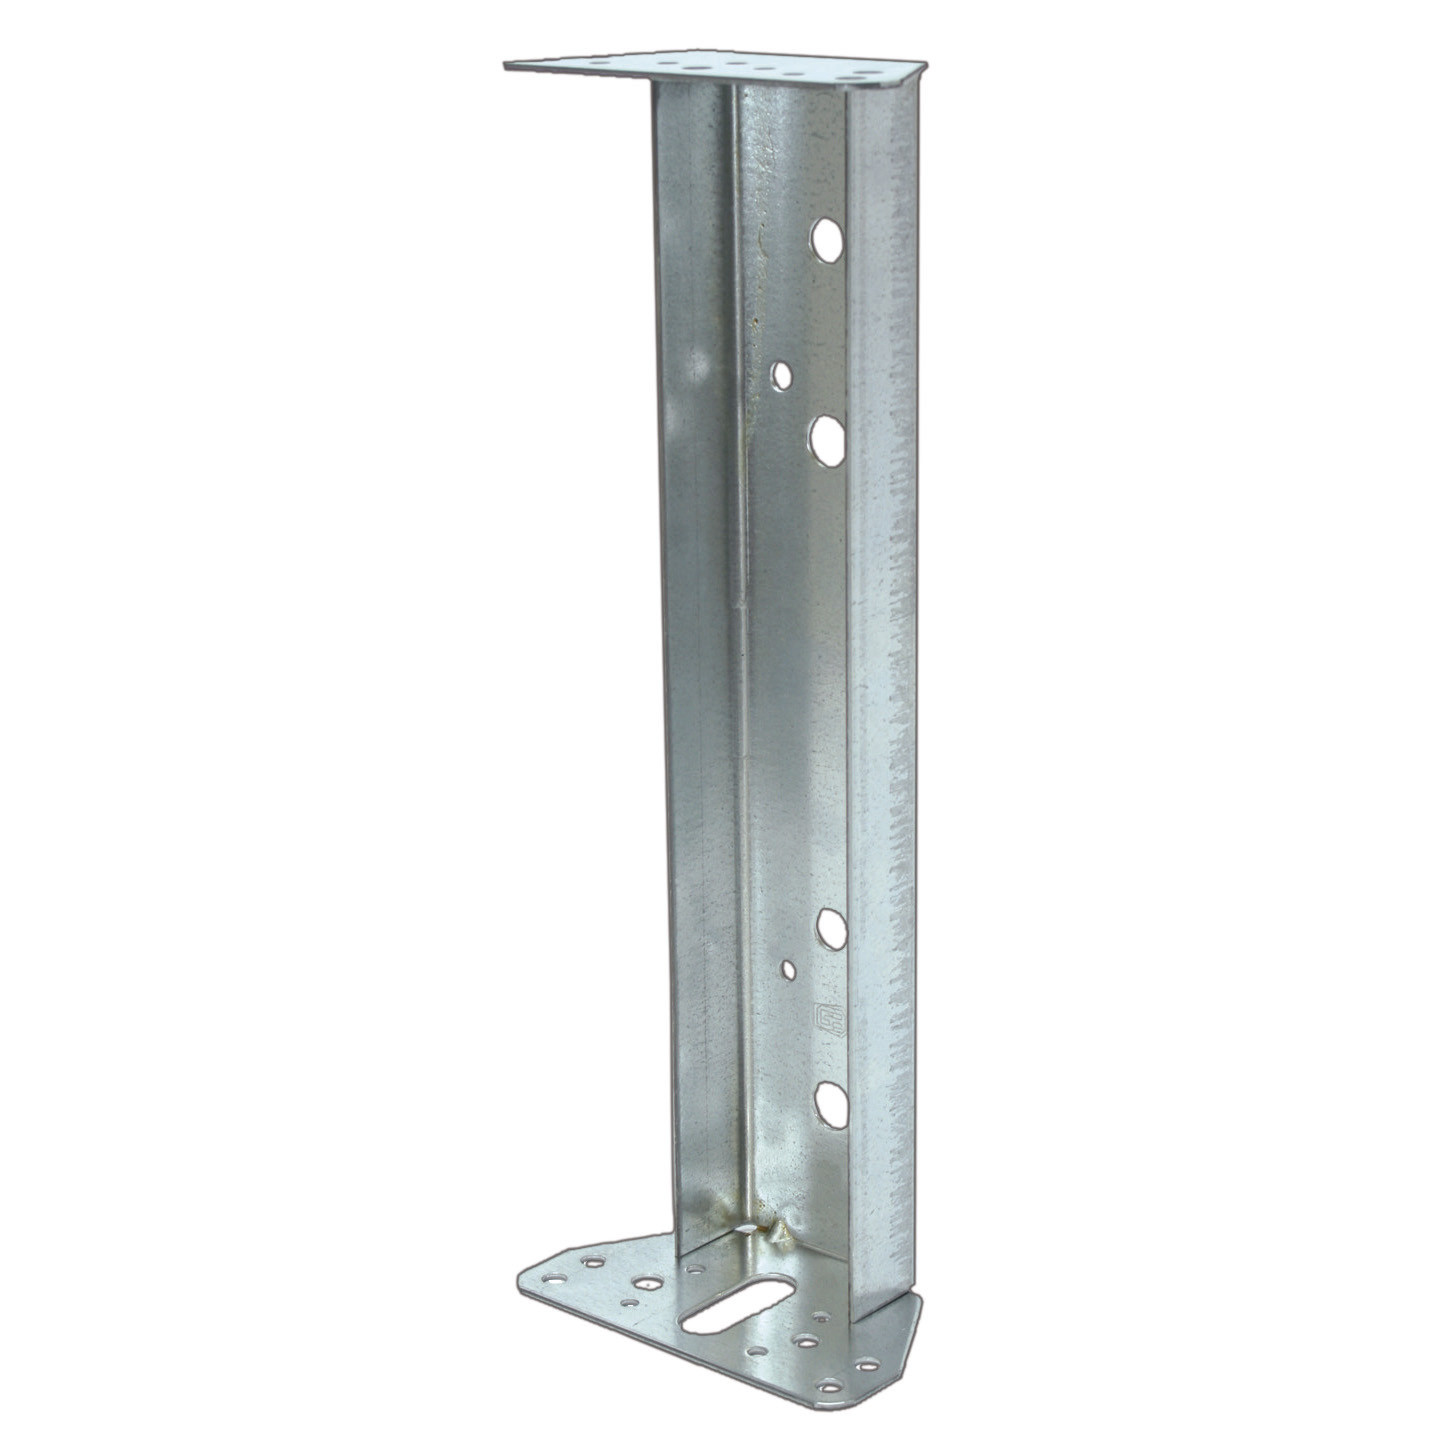 Window front frame support 60x70x360 115x2 ZM